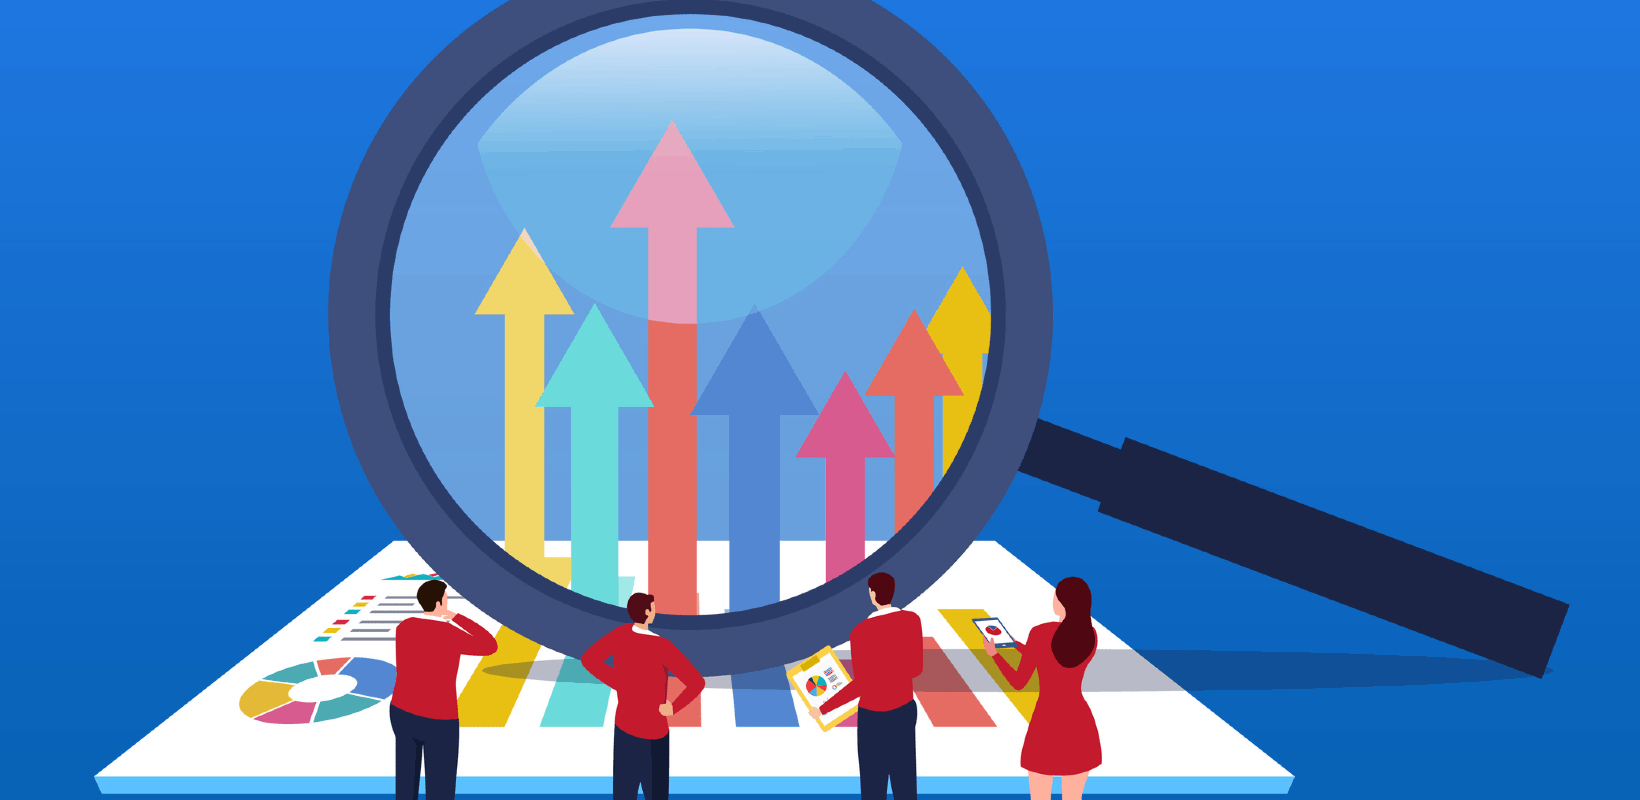 An illustration of people looking at a chart through a giant magnifying glass.